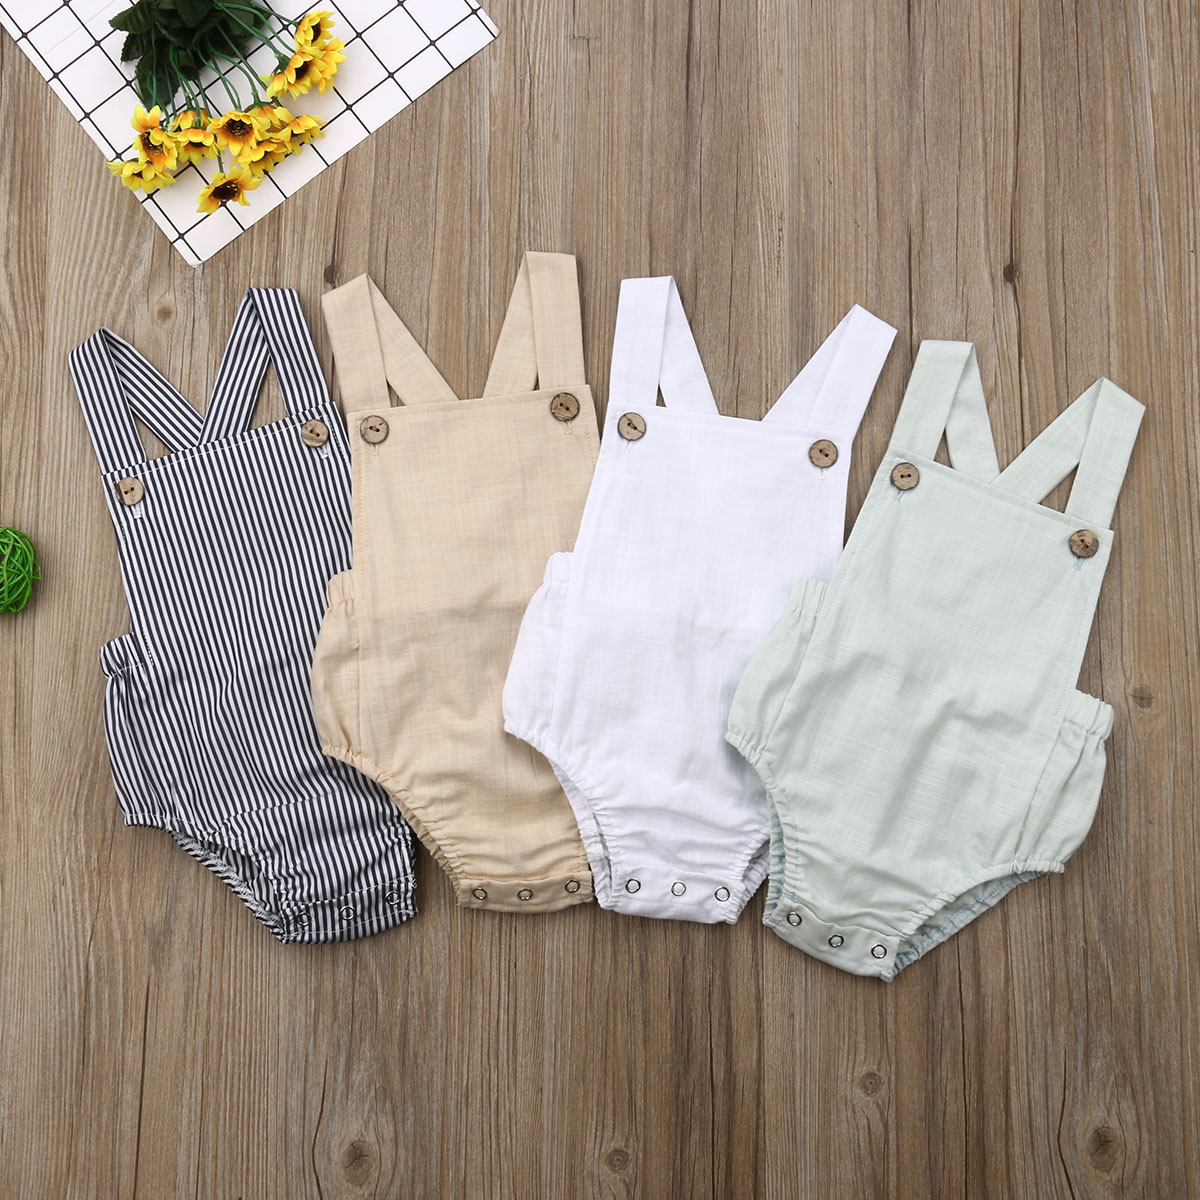 Pudcoco Summer Newborn Baby Girl Cotton Solid Cute Bottom Bodysuit Jumpsuit Outfit Clothes